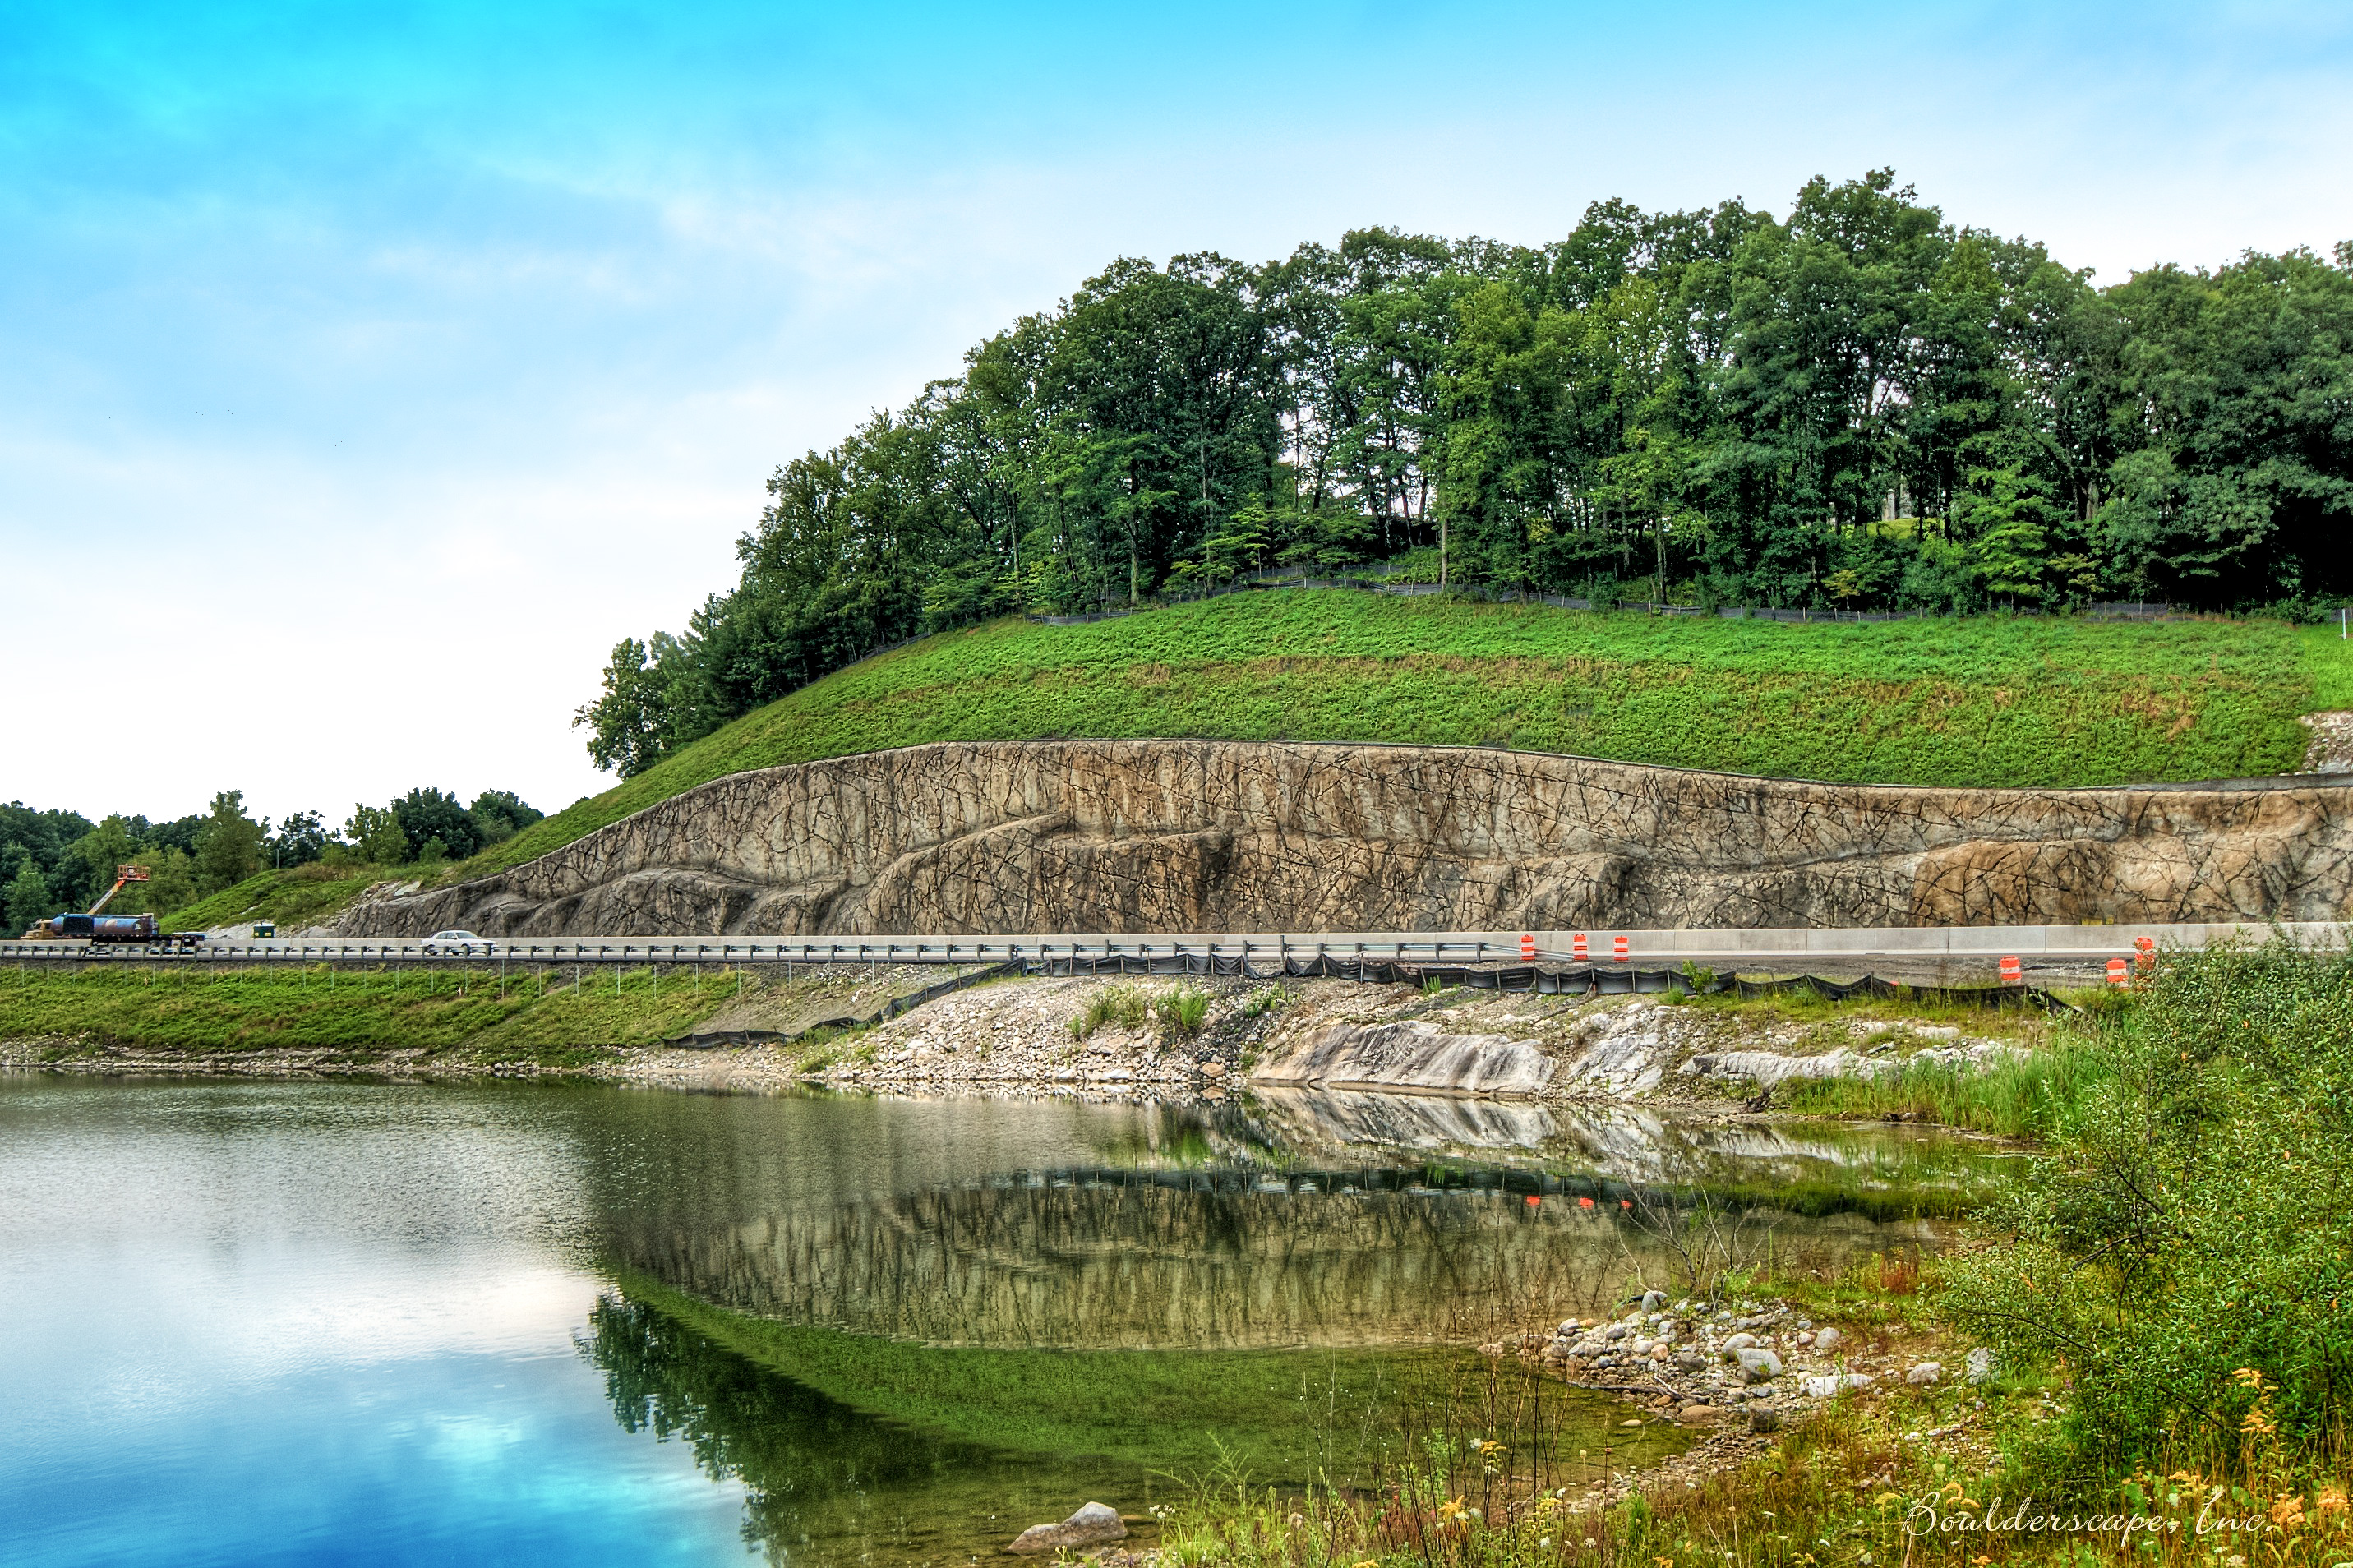 CT Department of Transportation Hires Boulderscape to Install 20,000+ Sqft Retaining Wall For Route 7